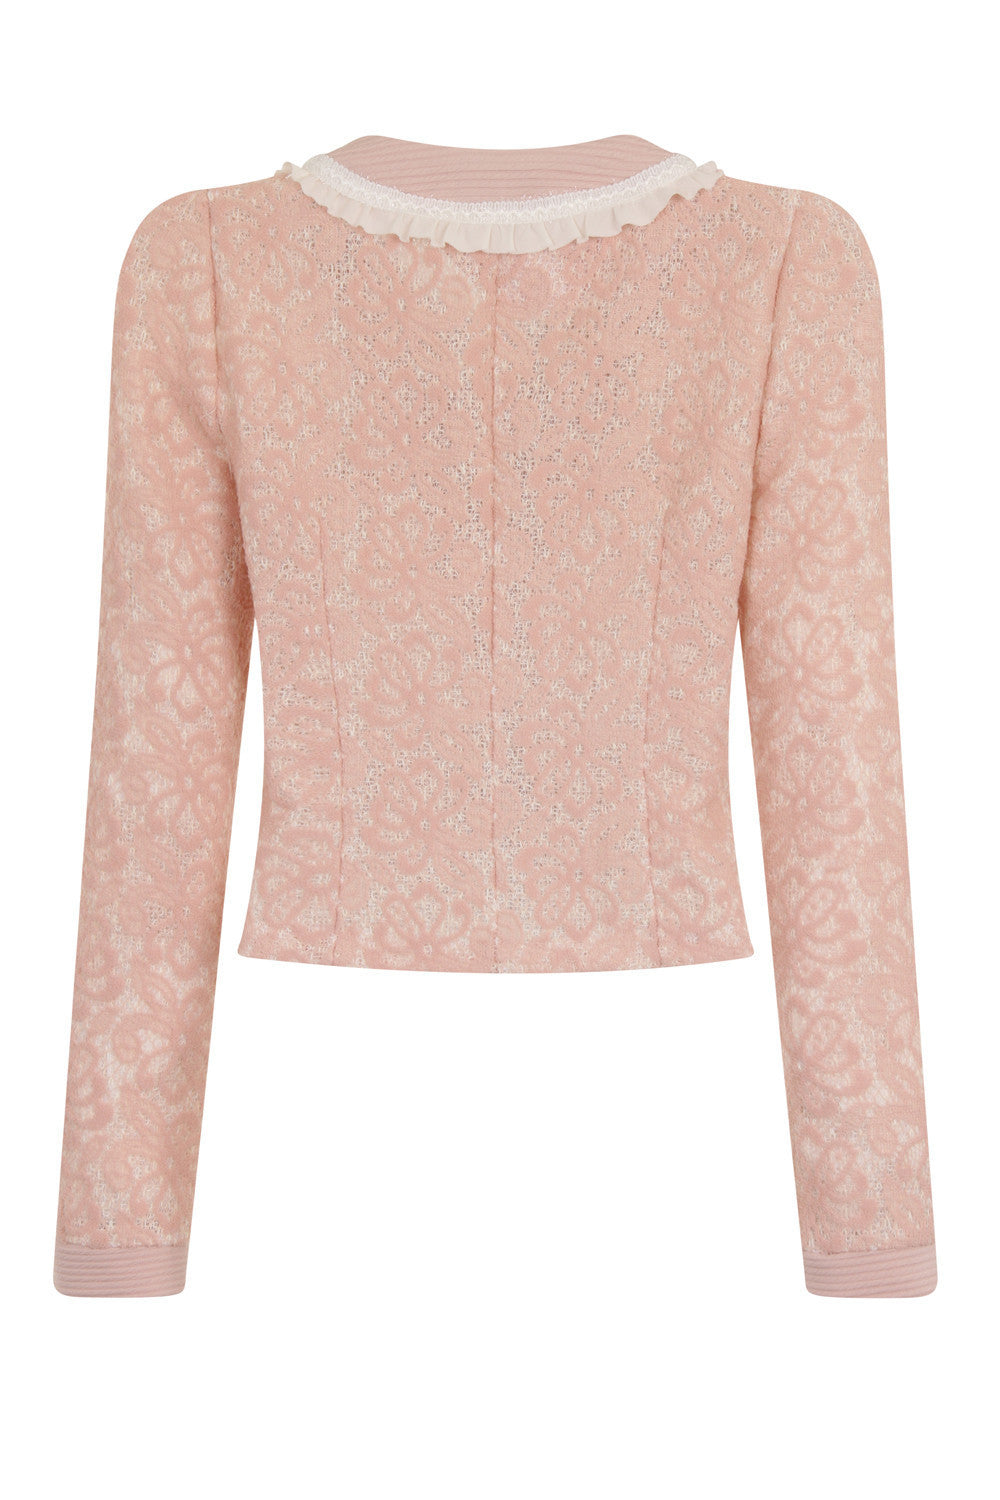 QUARTER LACE SHORT JACKET - PINK - Darccy & Soma London